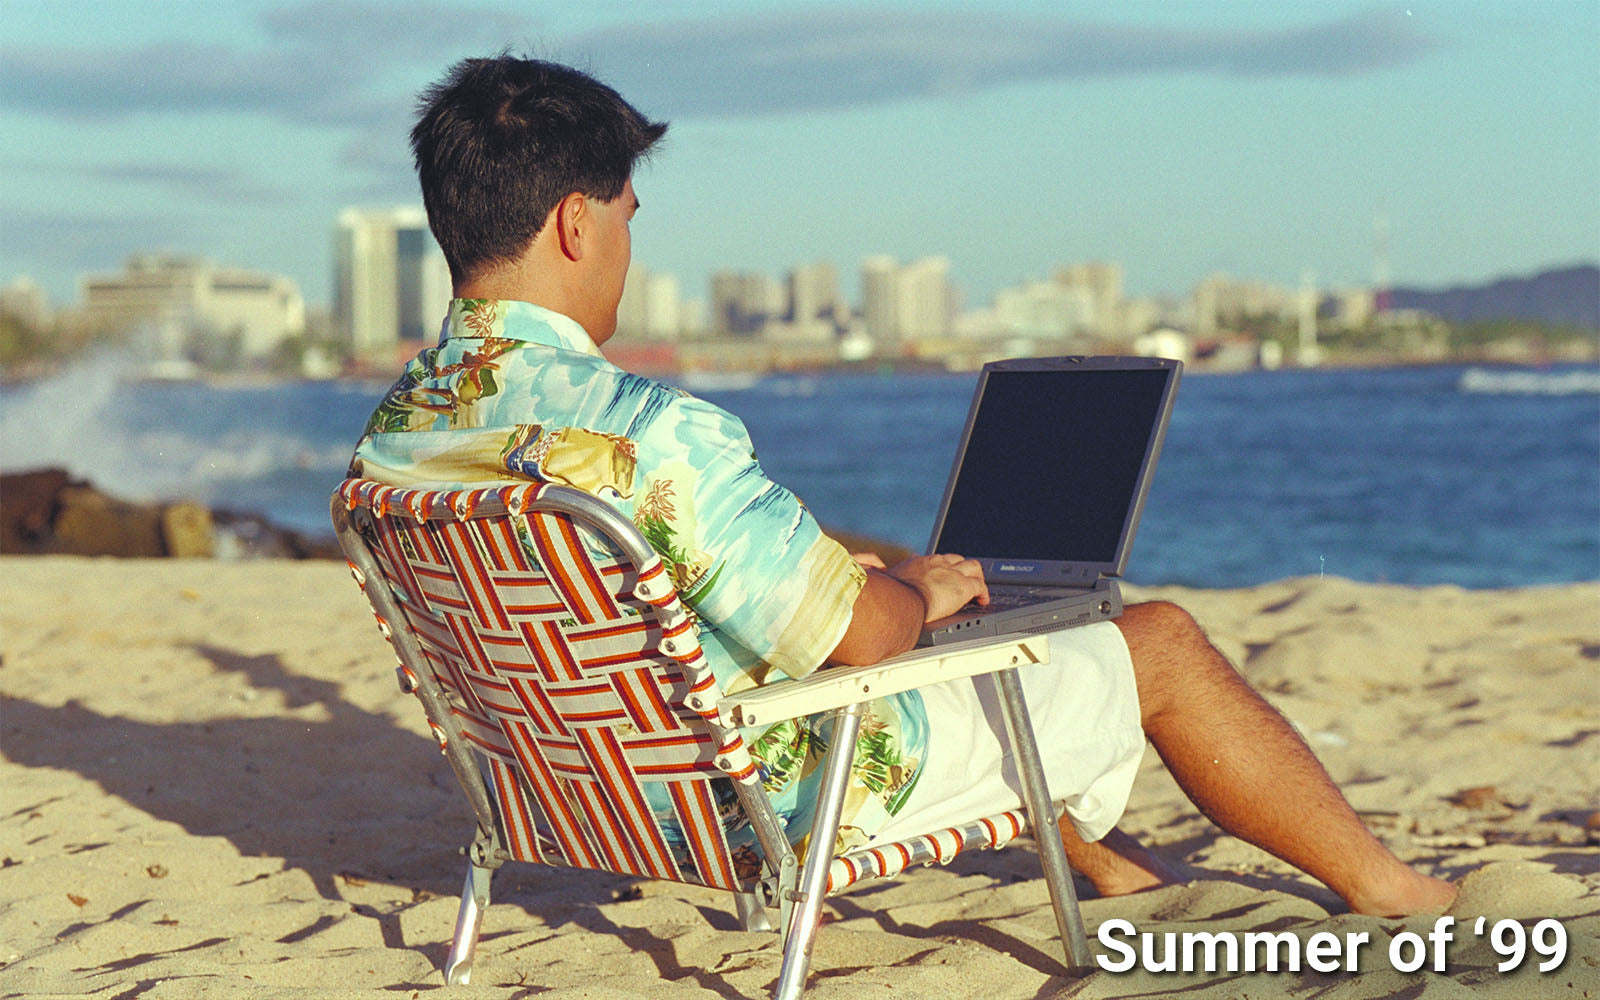 working on the beach in an Aloha shirt